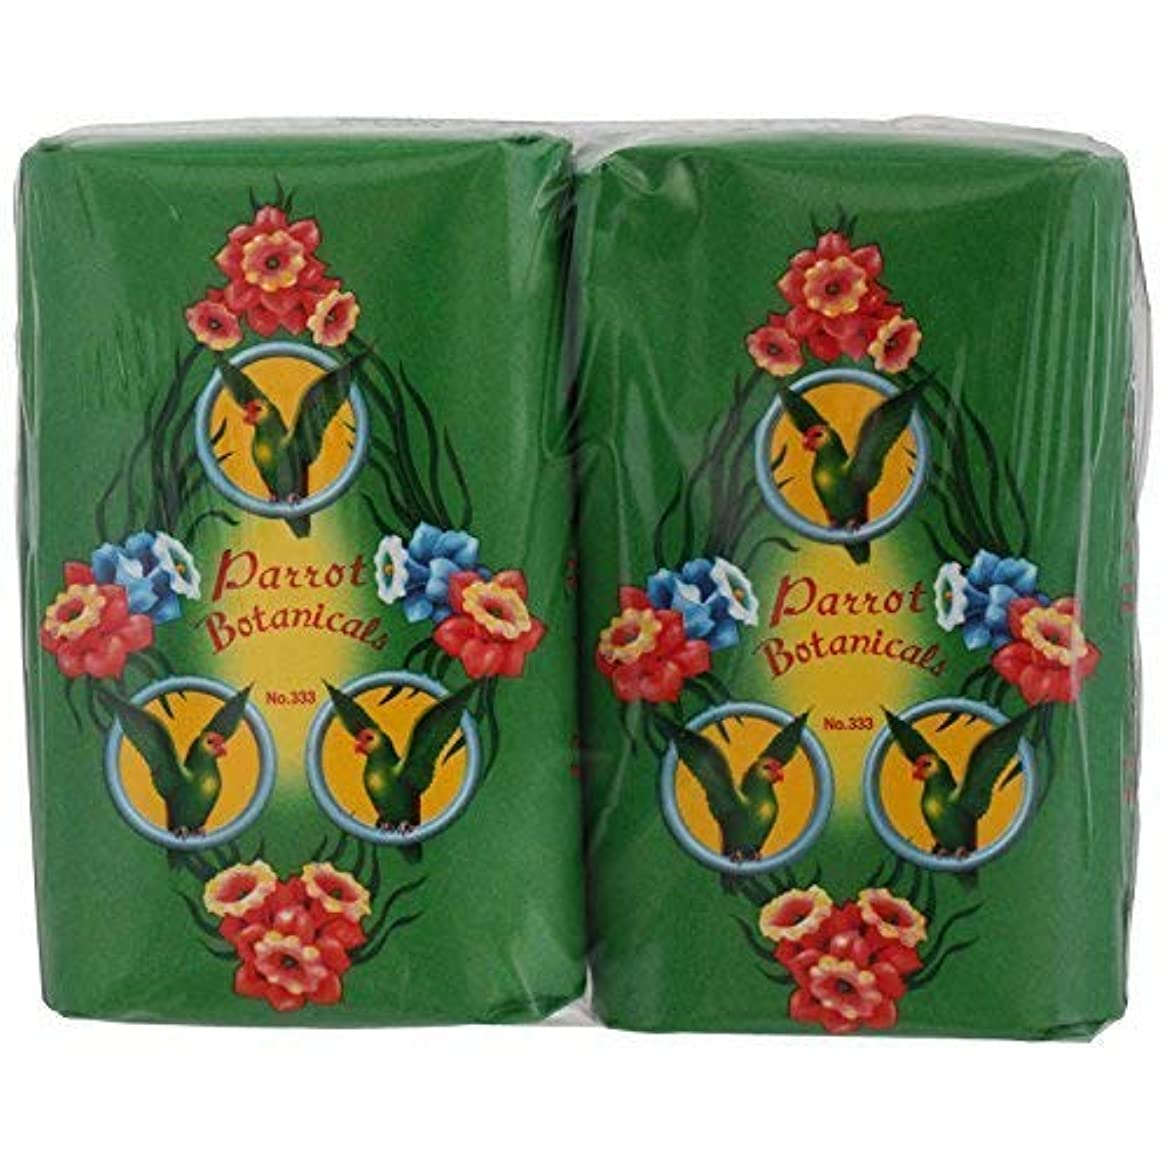 Rose Thai Smile Shop Parrot Botanicals Soap Green Long Last Fragrance 105 G (Pack of 4) Free Shipping